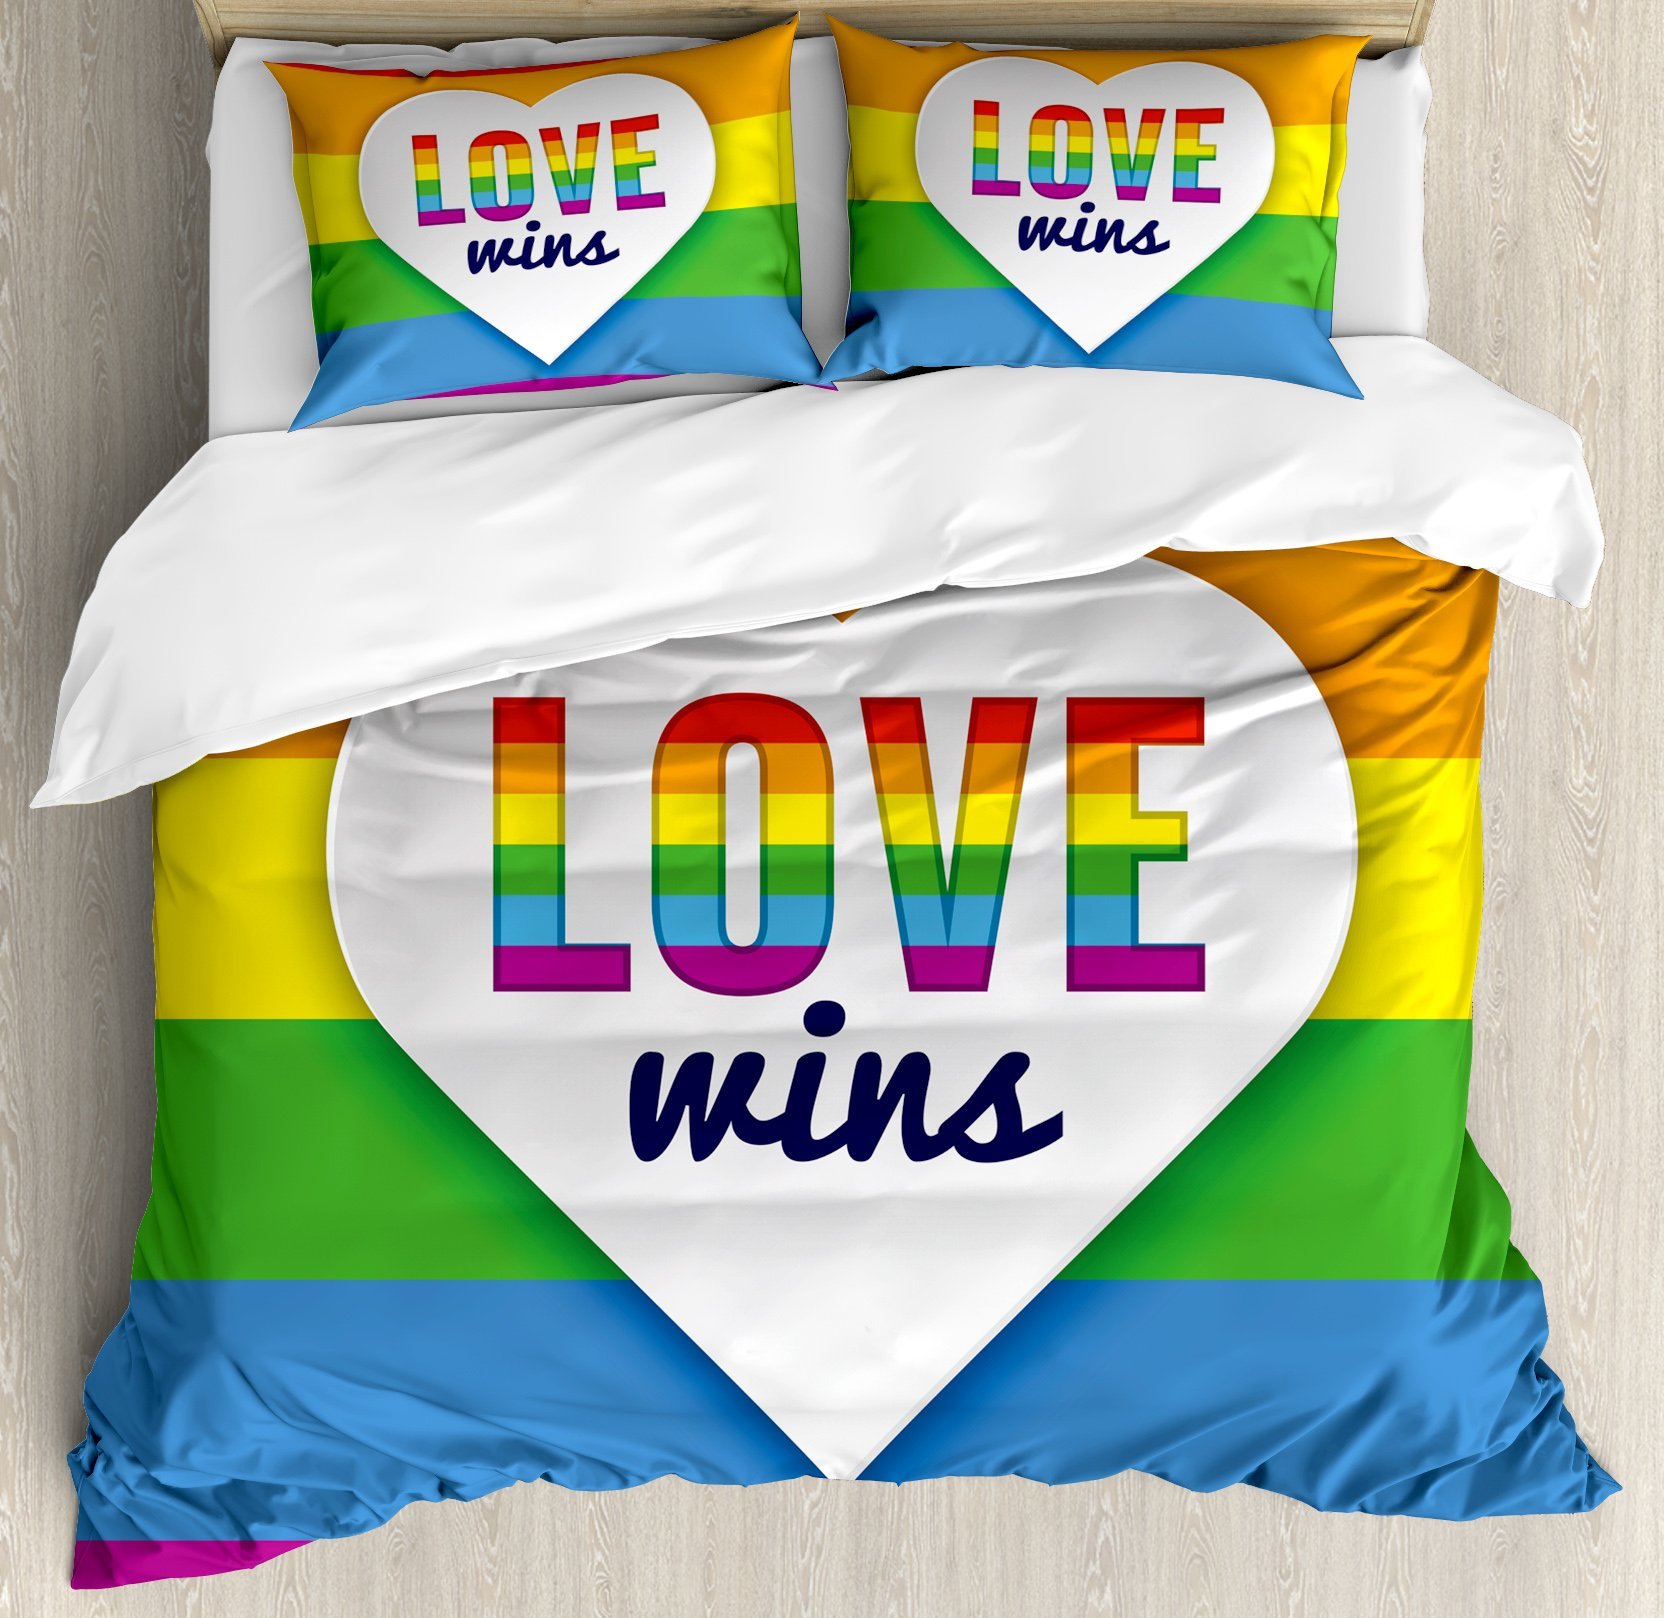 Pride Decorations Queen Size Duvet Cover Set by Ambesonne, Rainbow Flag Stripes Heart Symbol with Love Wins Text LGBT Culture Colors, Decorative 3 Piece Bedding Set with 2 Pillow Shams, Multicolor